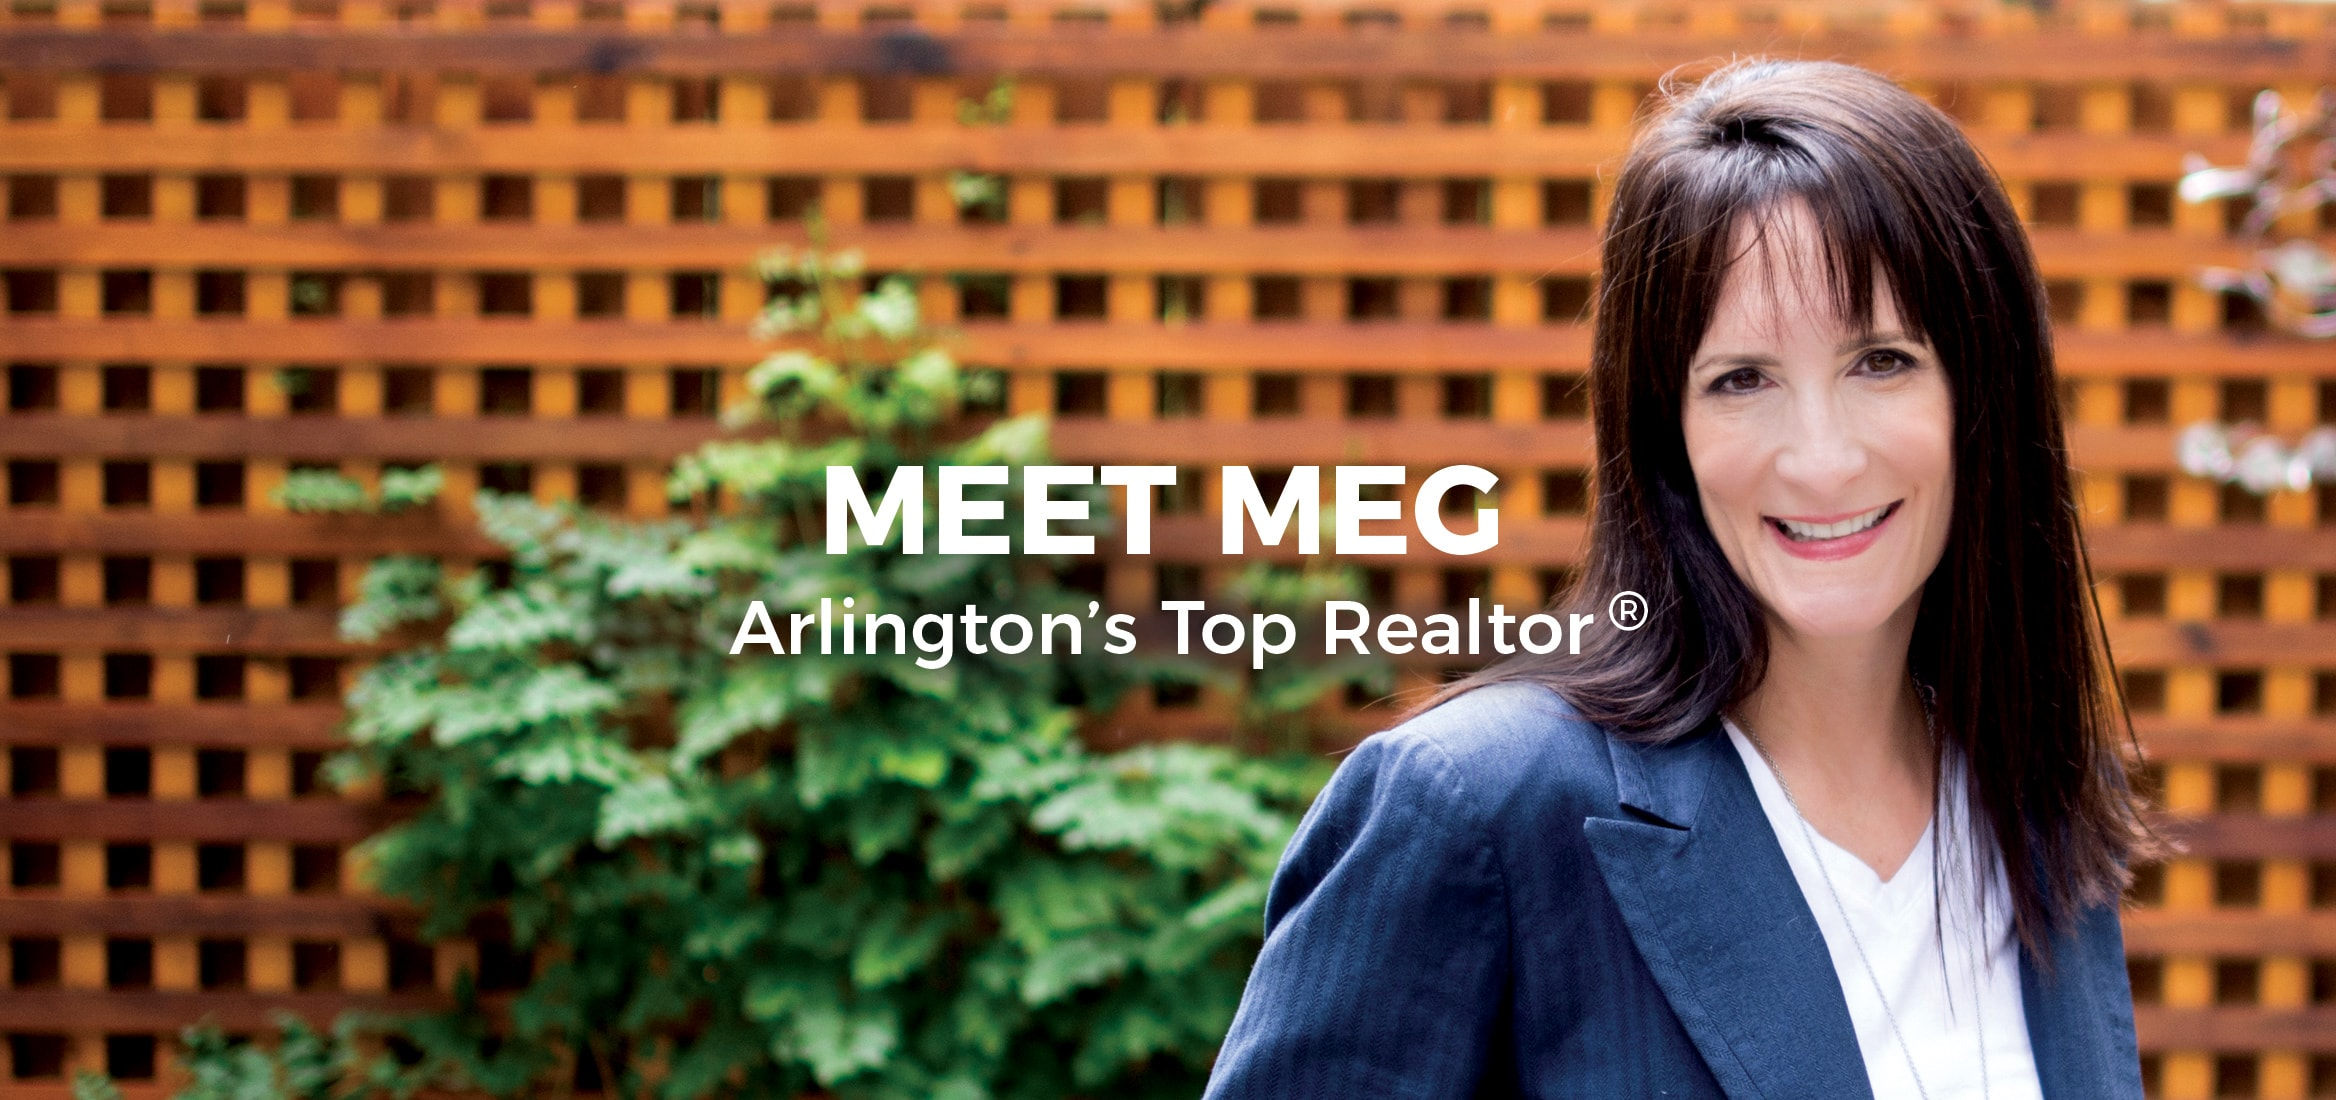 Meet Meg Ross top Arlington realtor